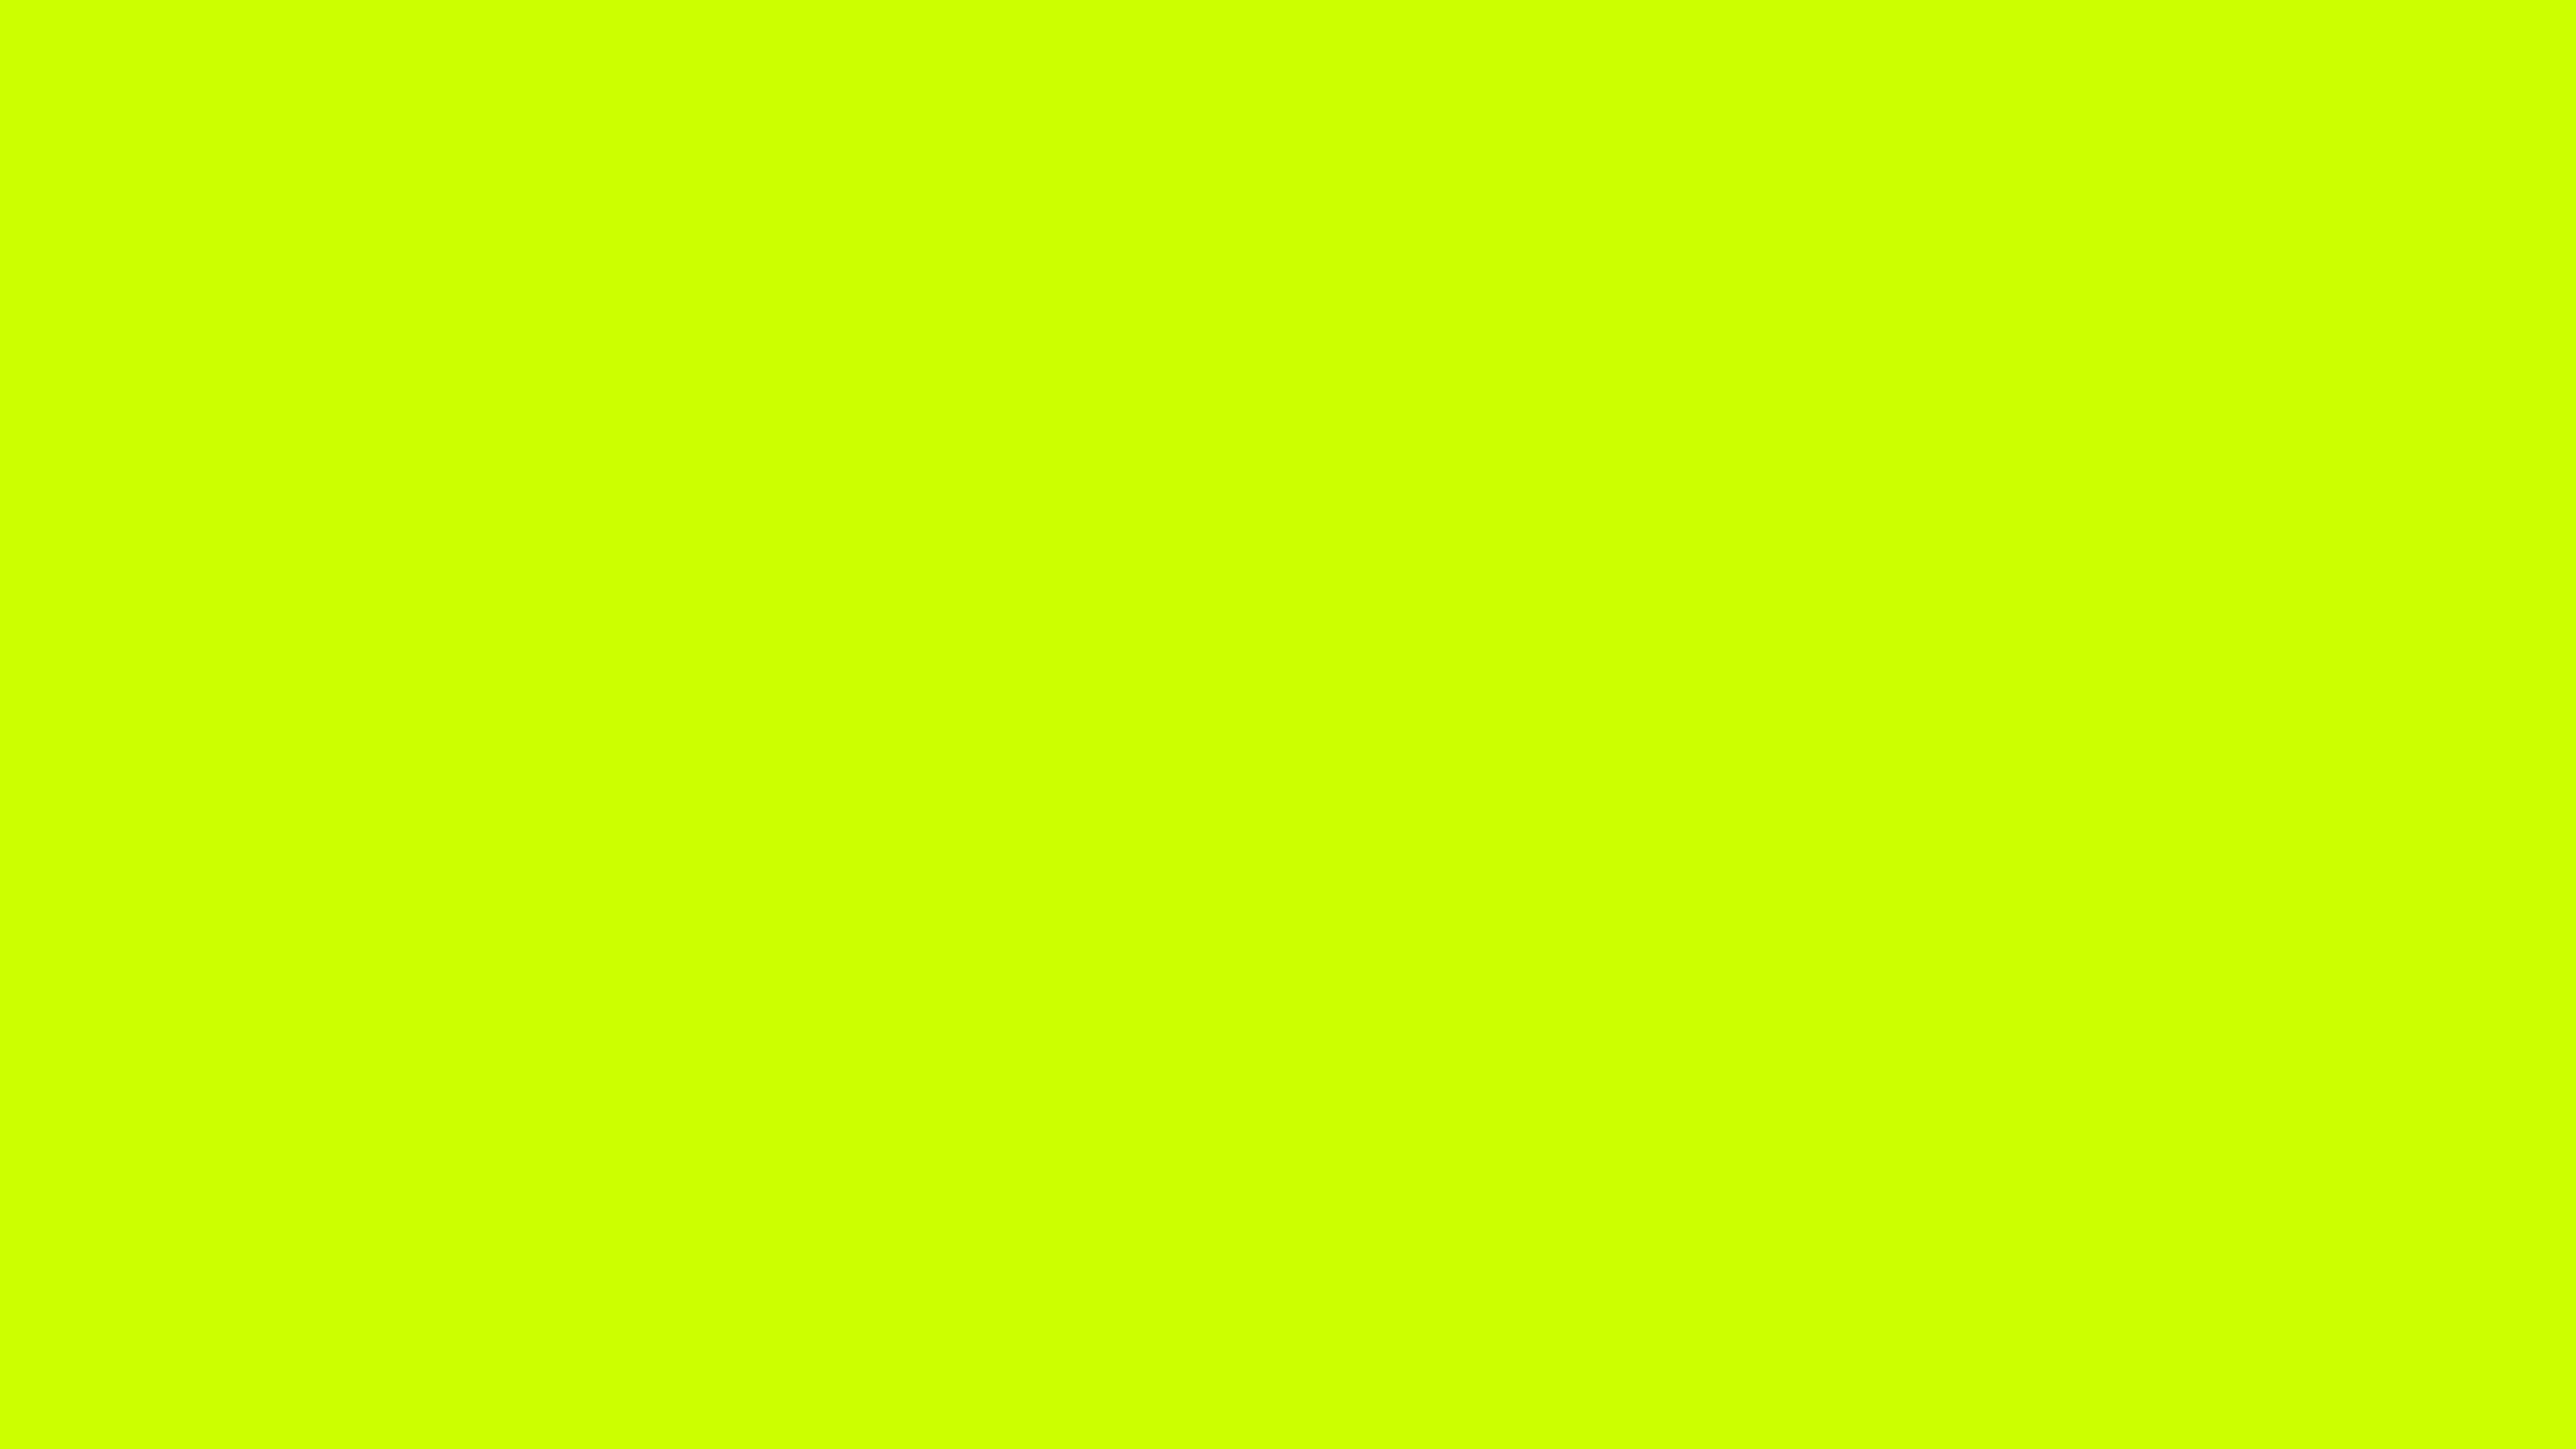 3840x2160 Fluorescent Yellow Solid Color Background